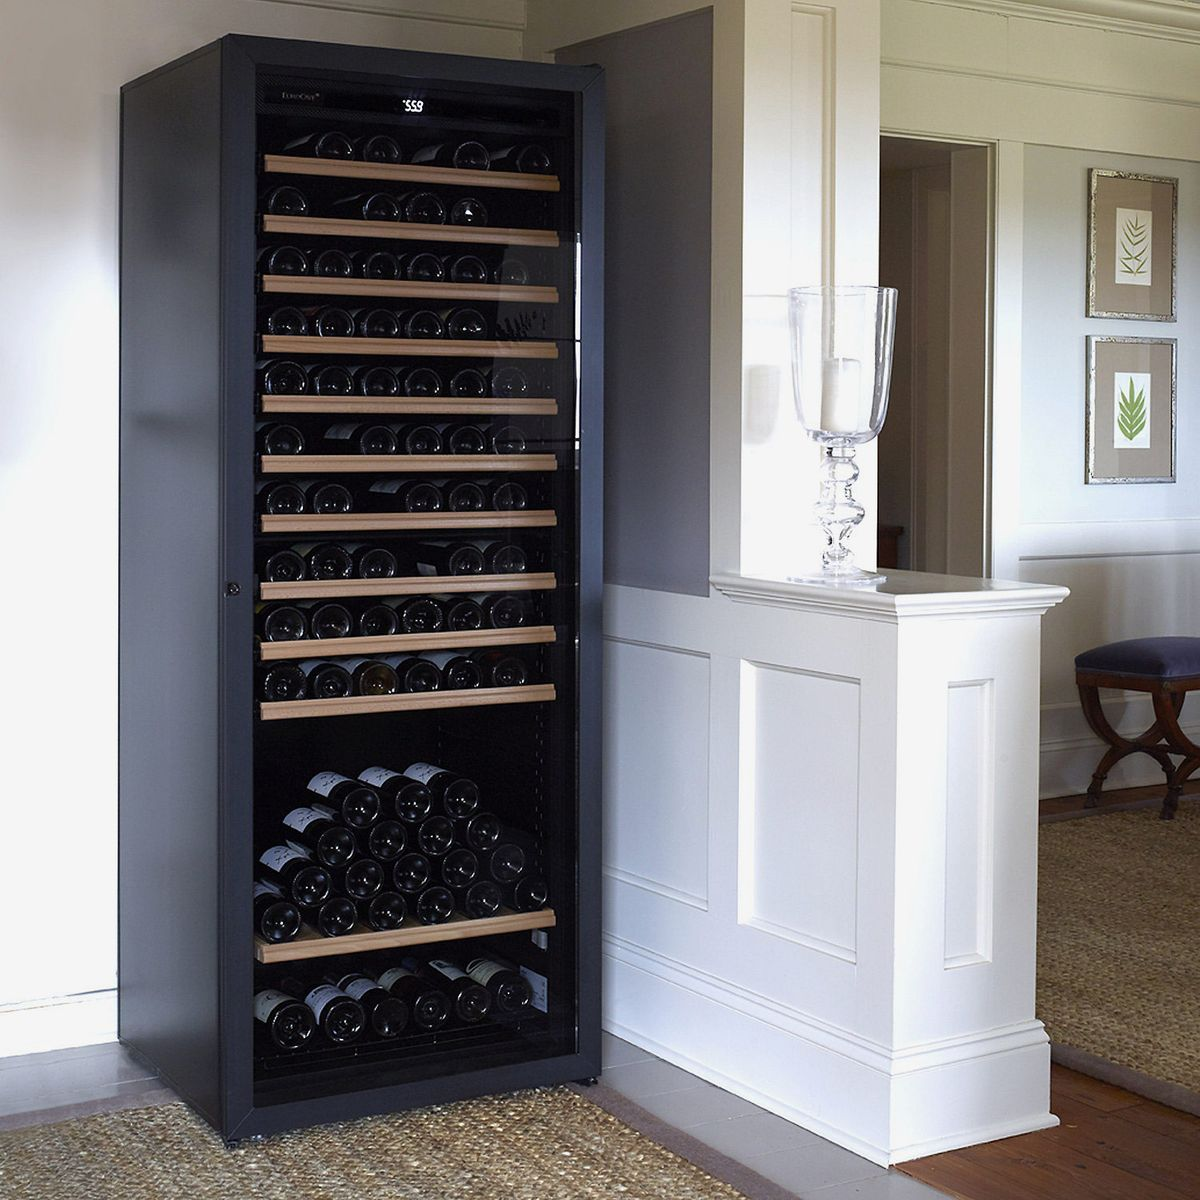 12 Best Wine Coolers And Fridges 2021 The Strategist New York Magazine